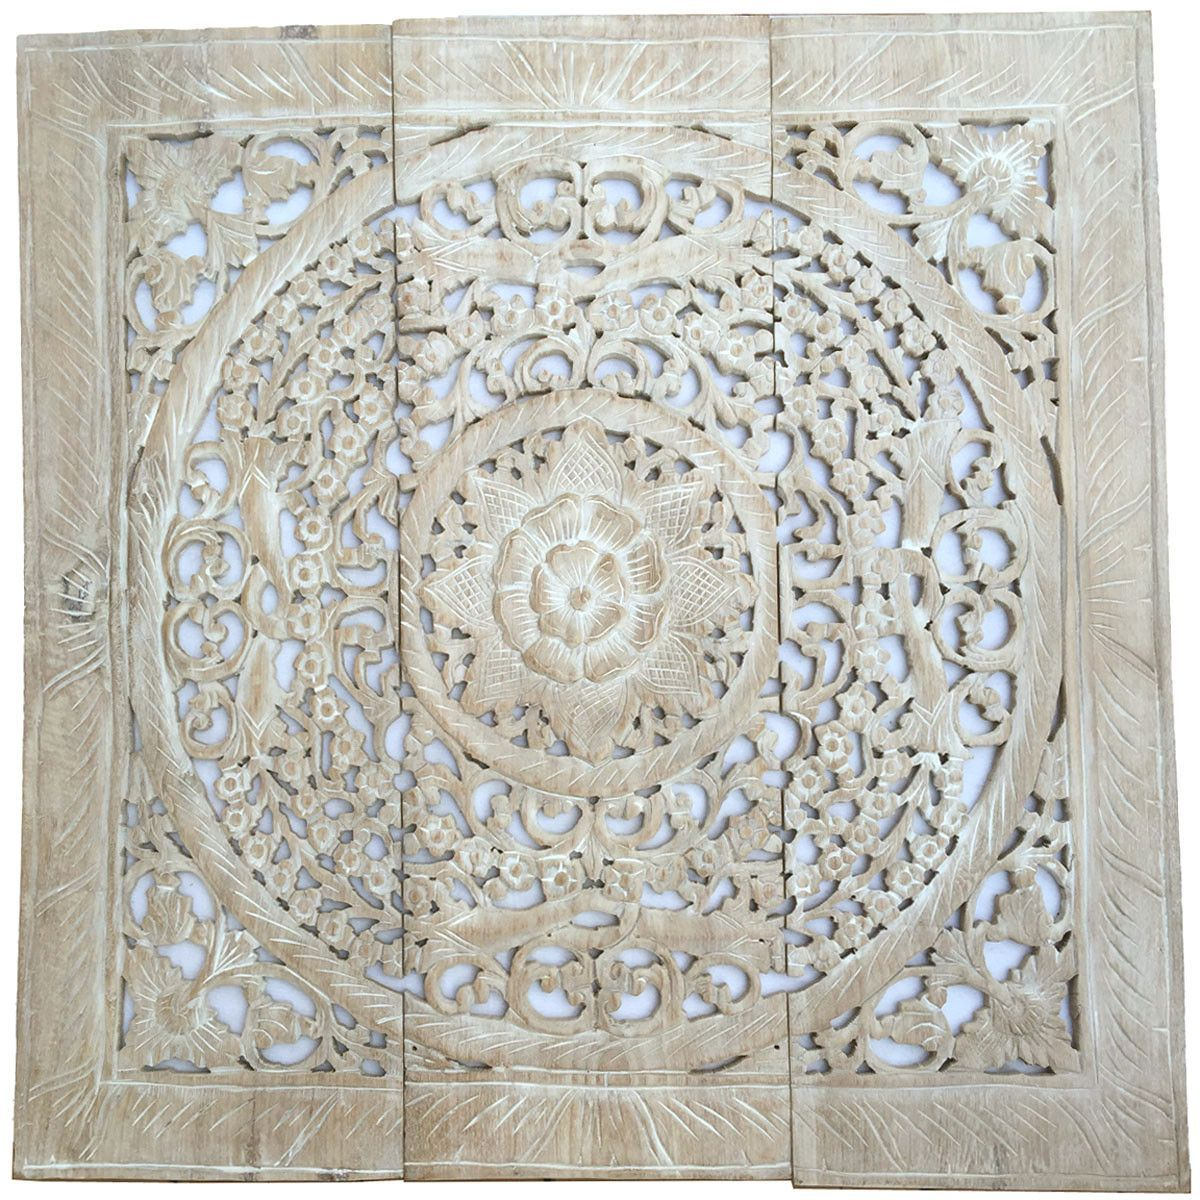 Set of large wood carved panels large decorative carved wood wall